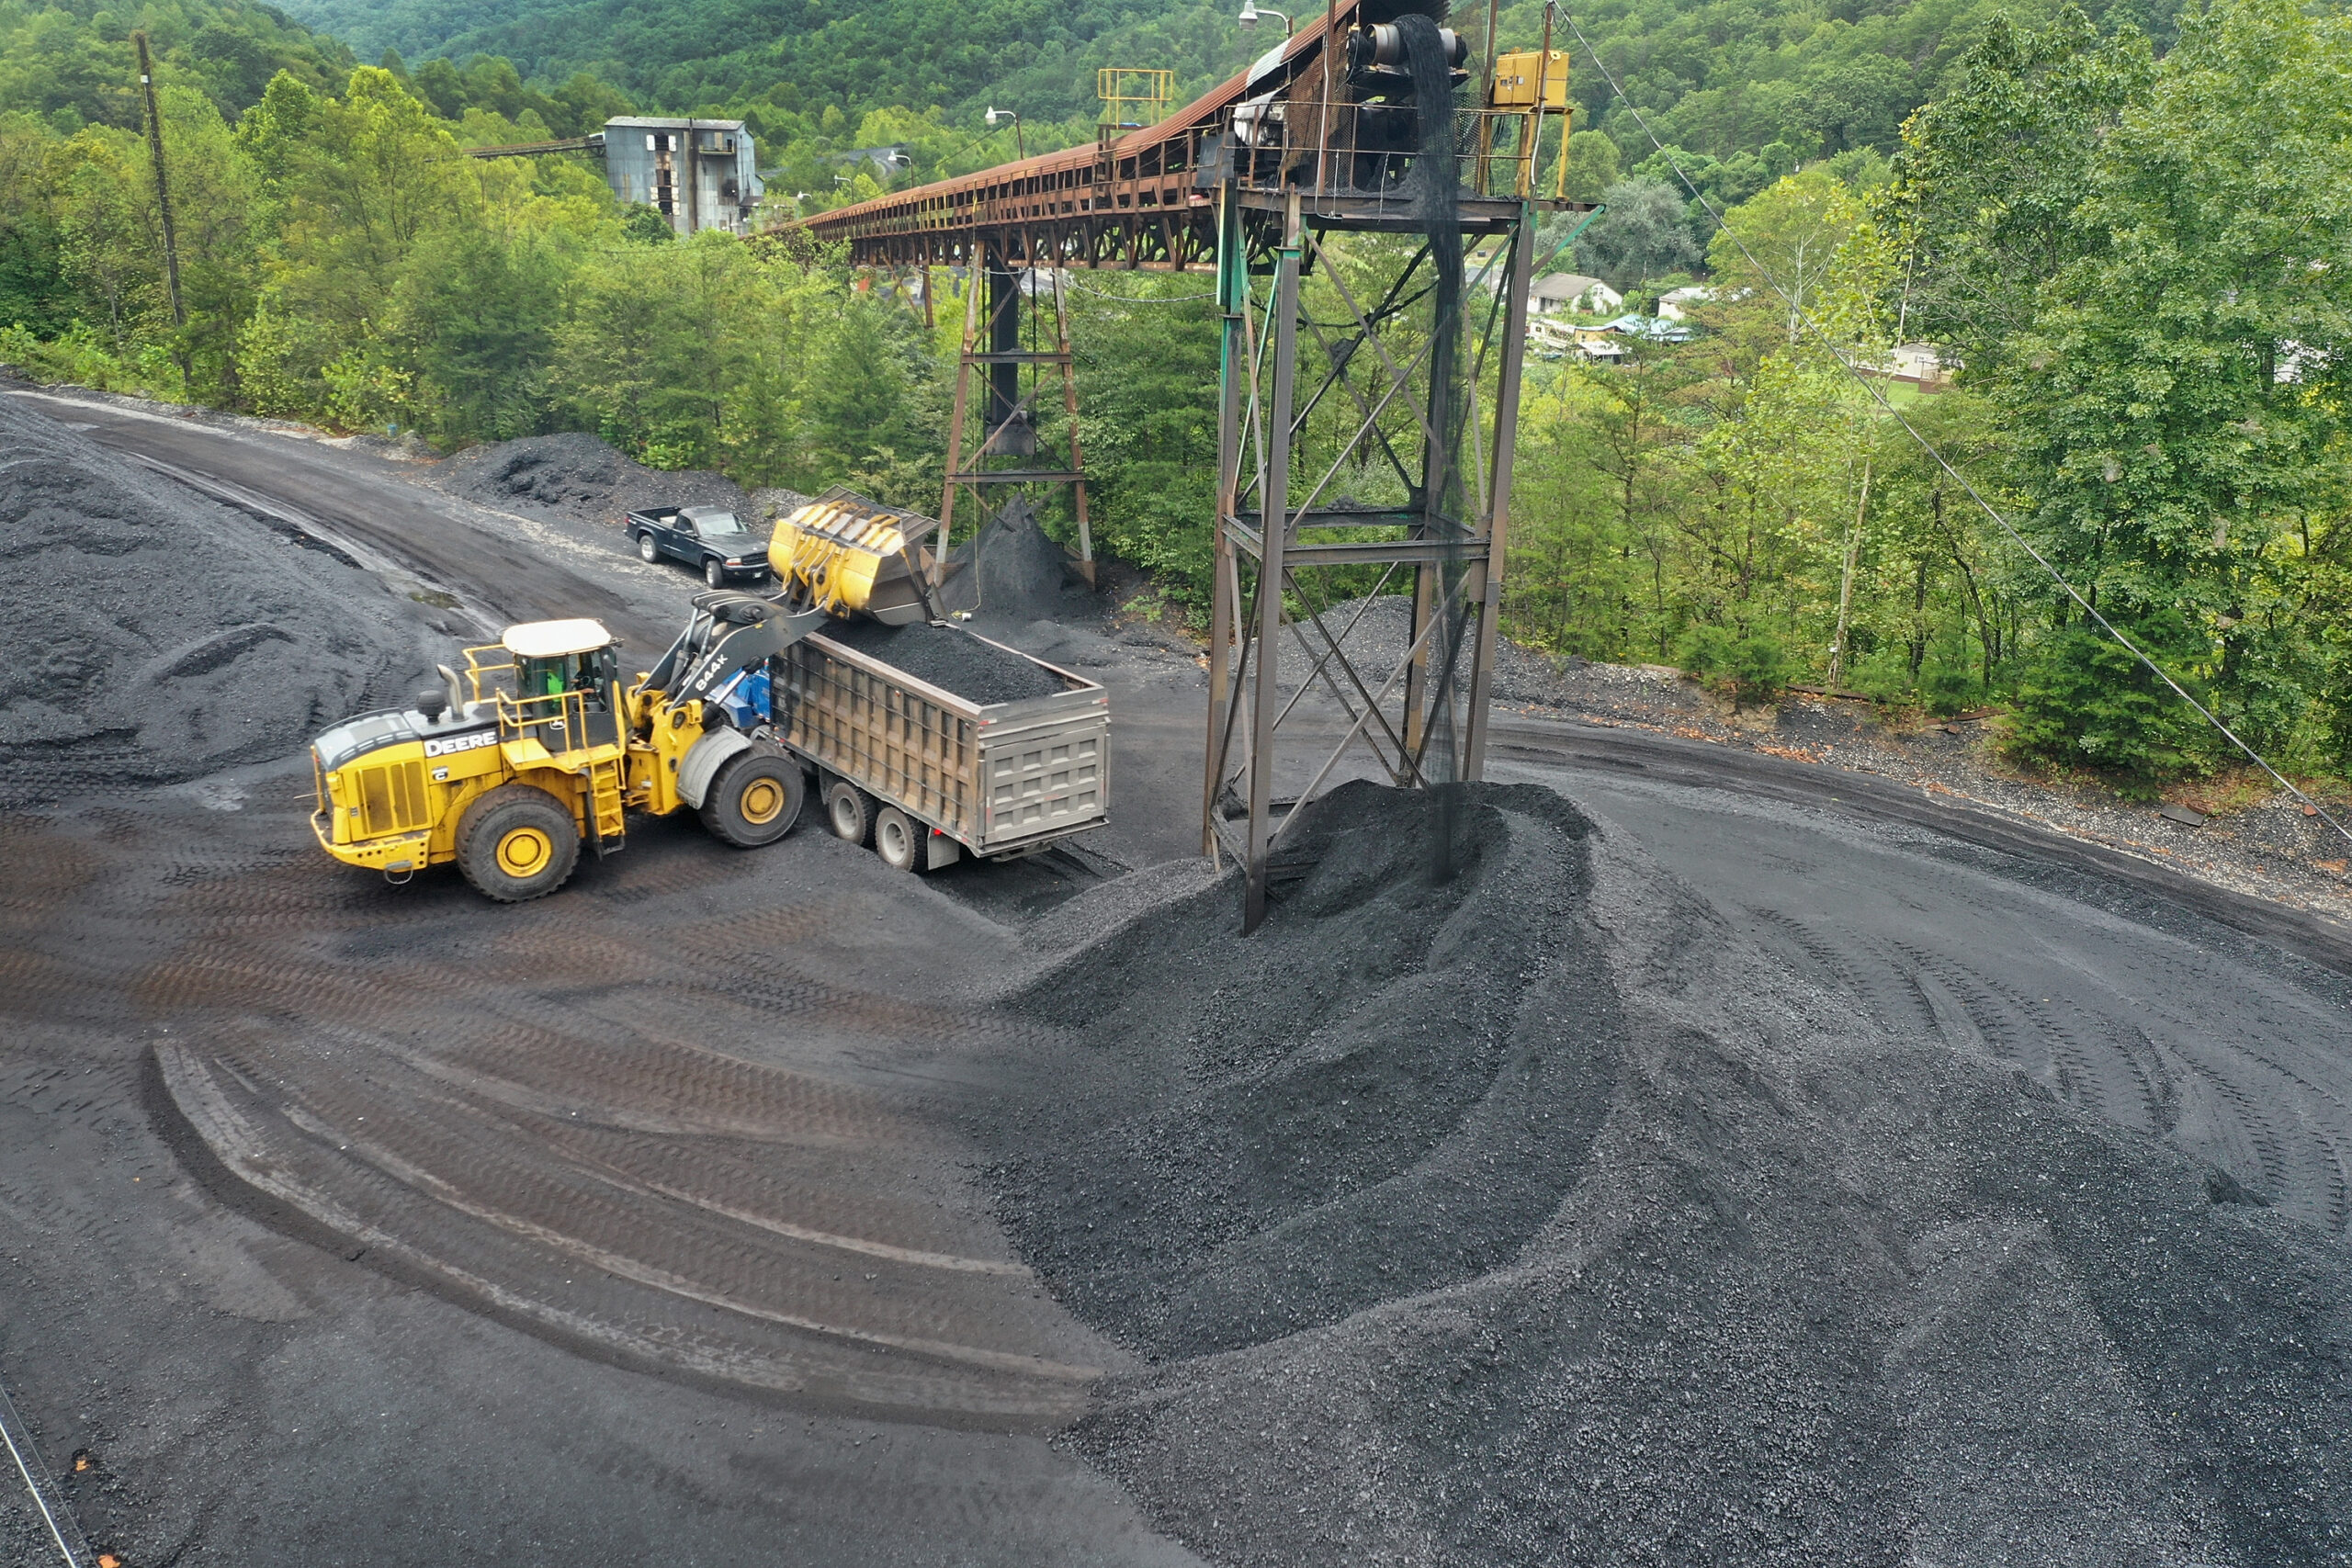 Coal is loaded onto a truck at a mine on Aug. 26, 2019 near Cumberland, Kentucky. Credit: Scott Olson/Getty Images